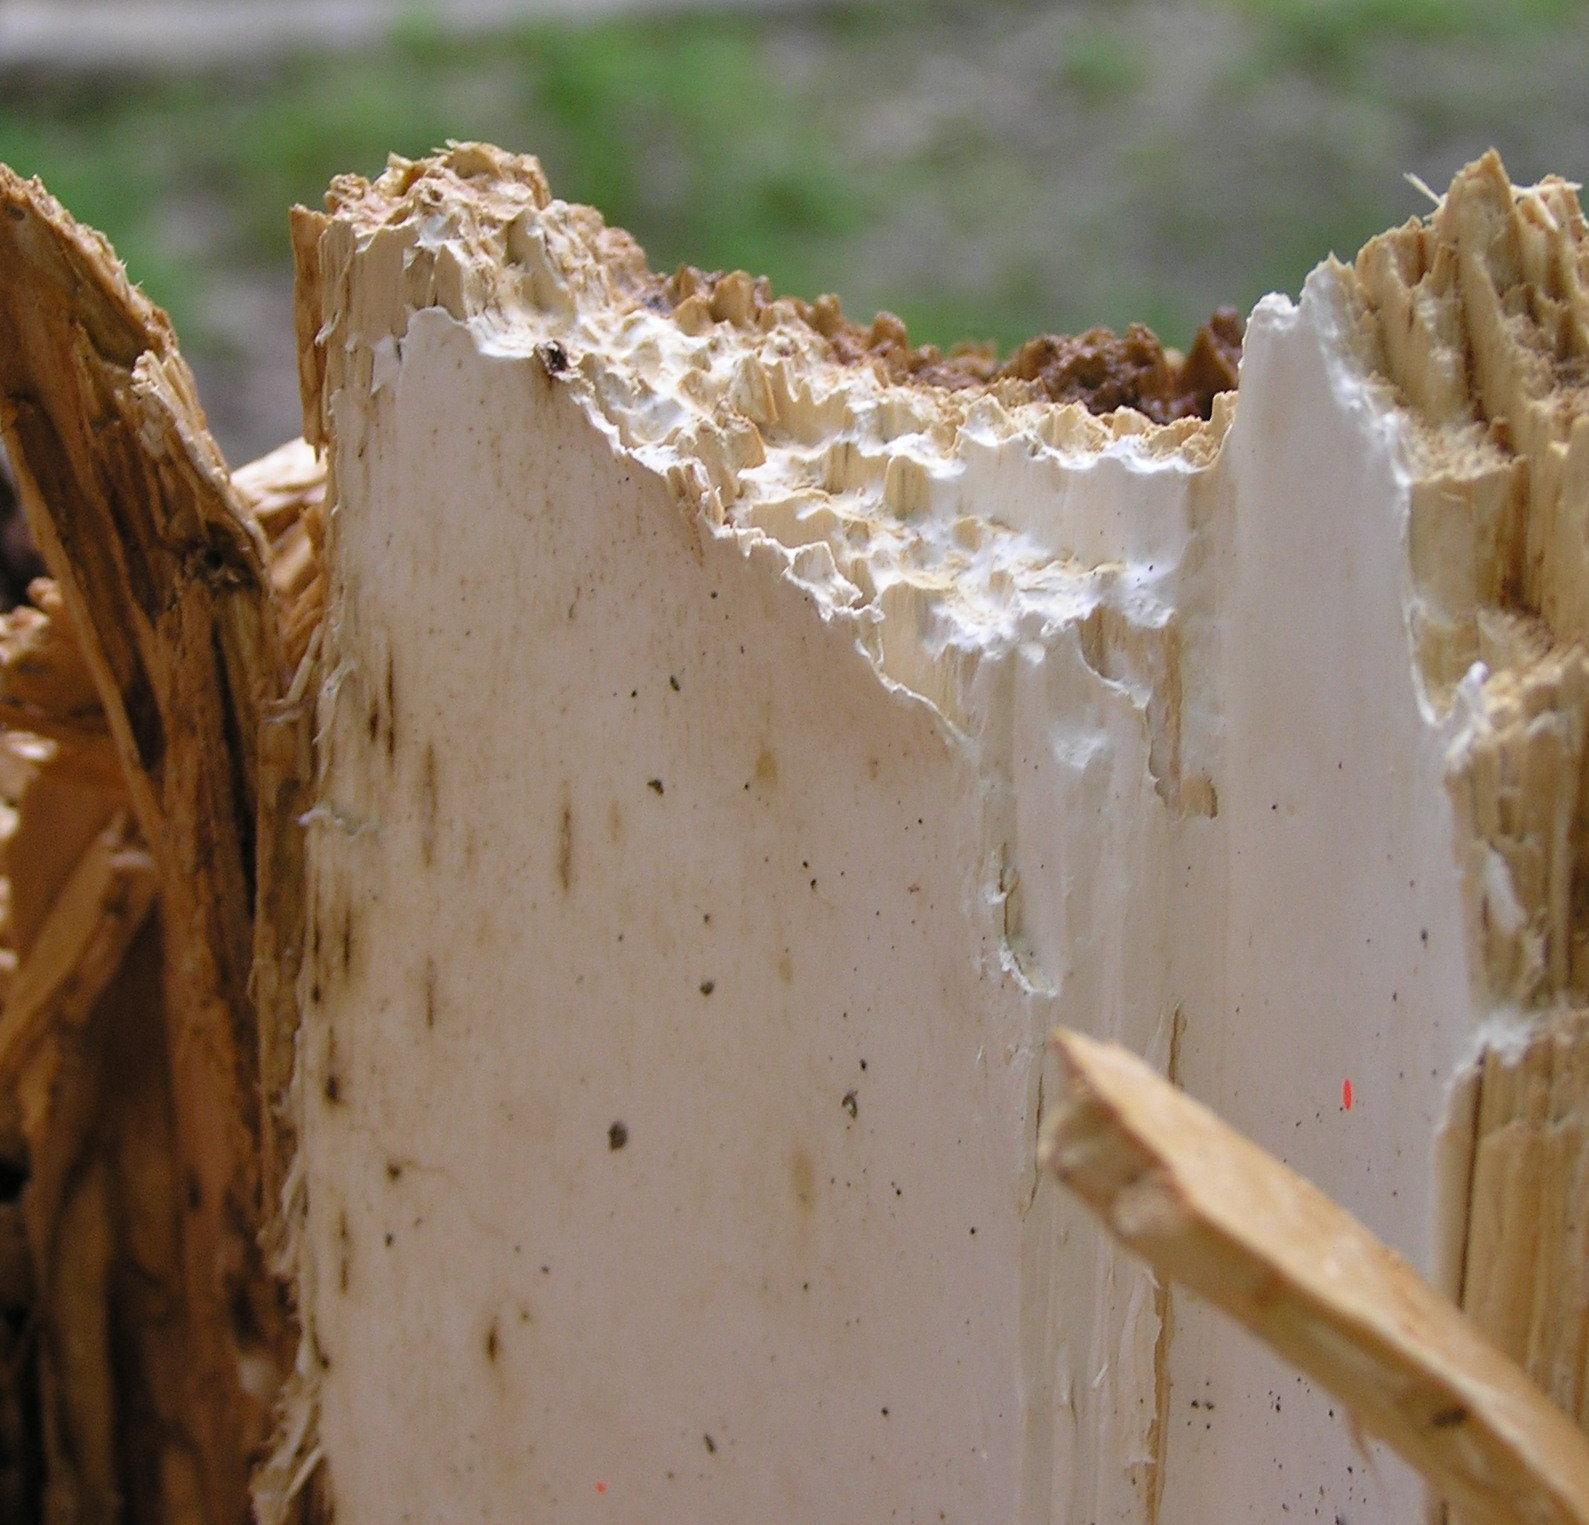 how to kill wood rot fungus